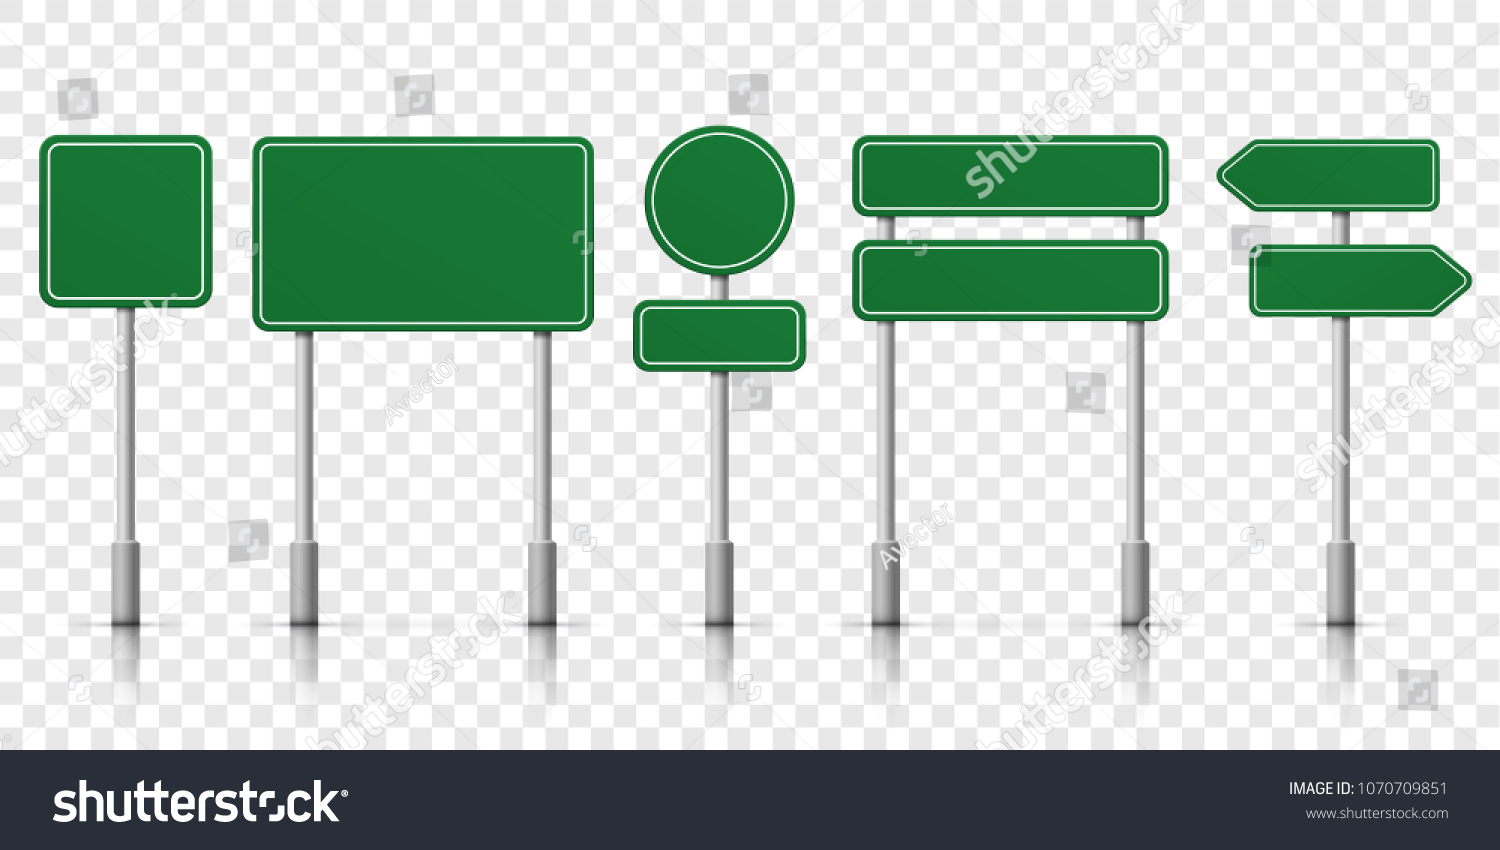 Road signs blank icons. Vector green plate road signs templates for direction #1070709851